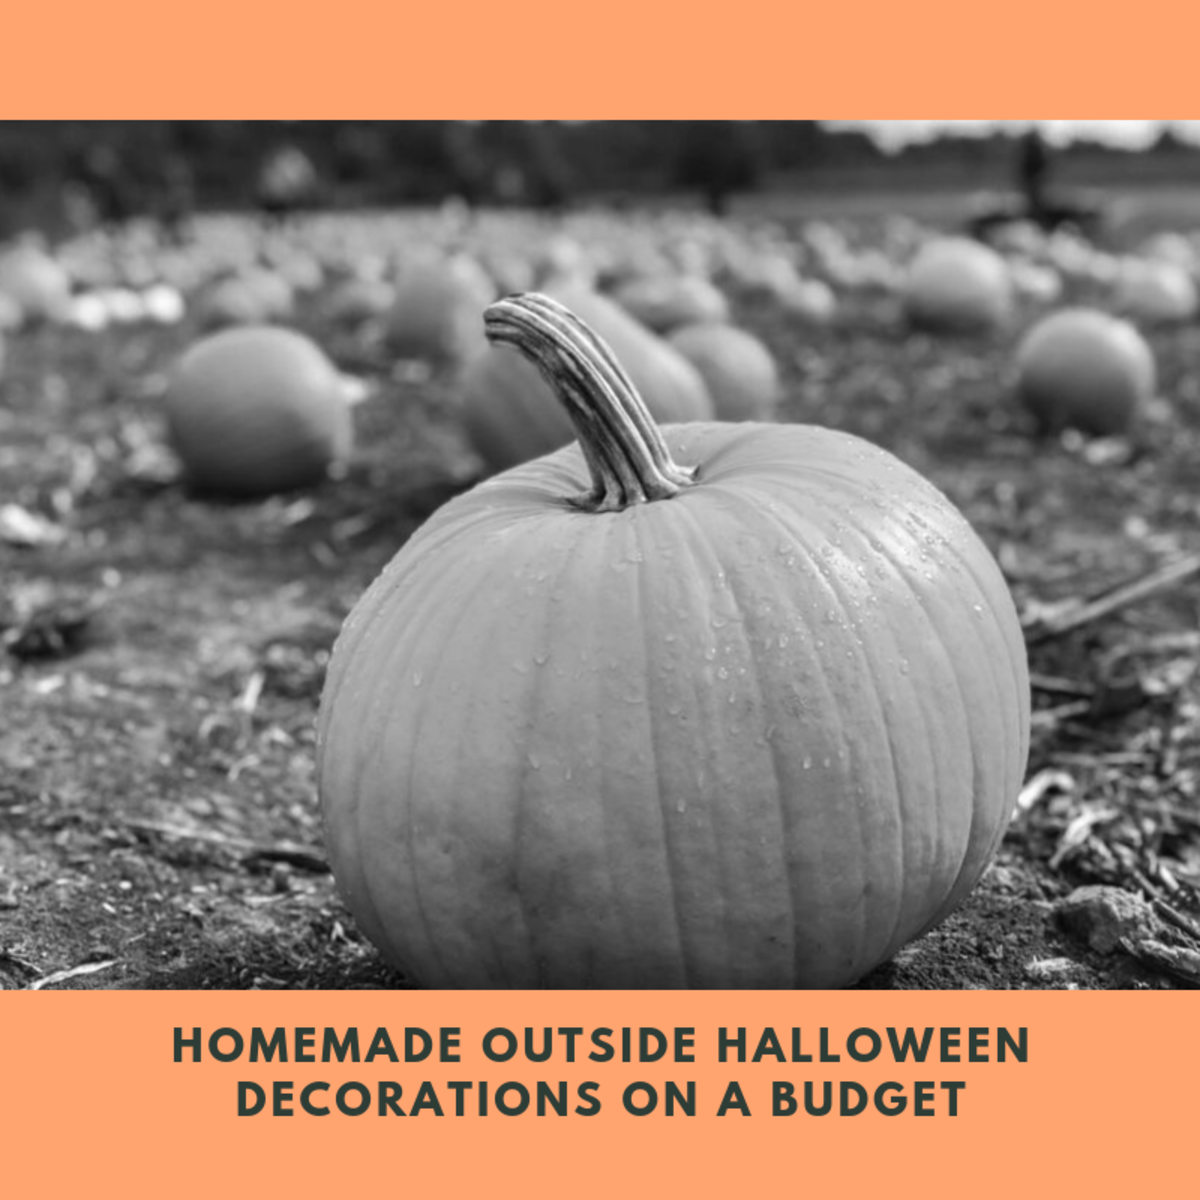 Homemade Outside Halloween Decorations on a Budget